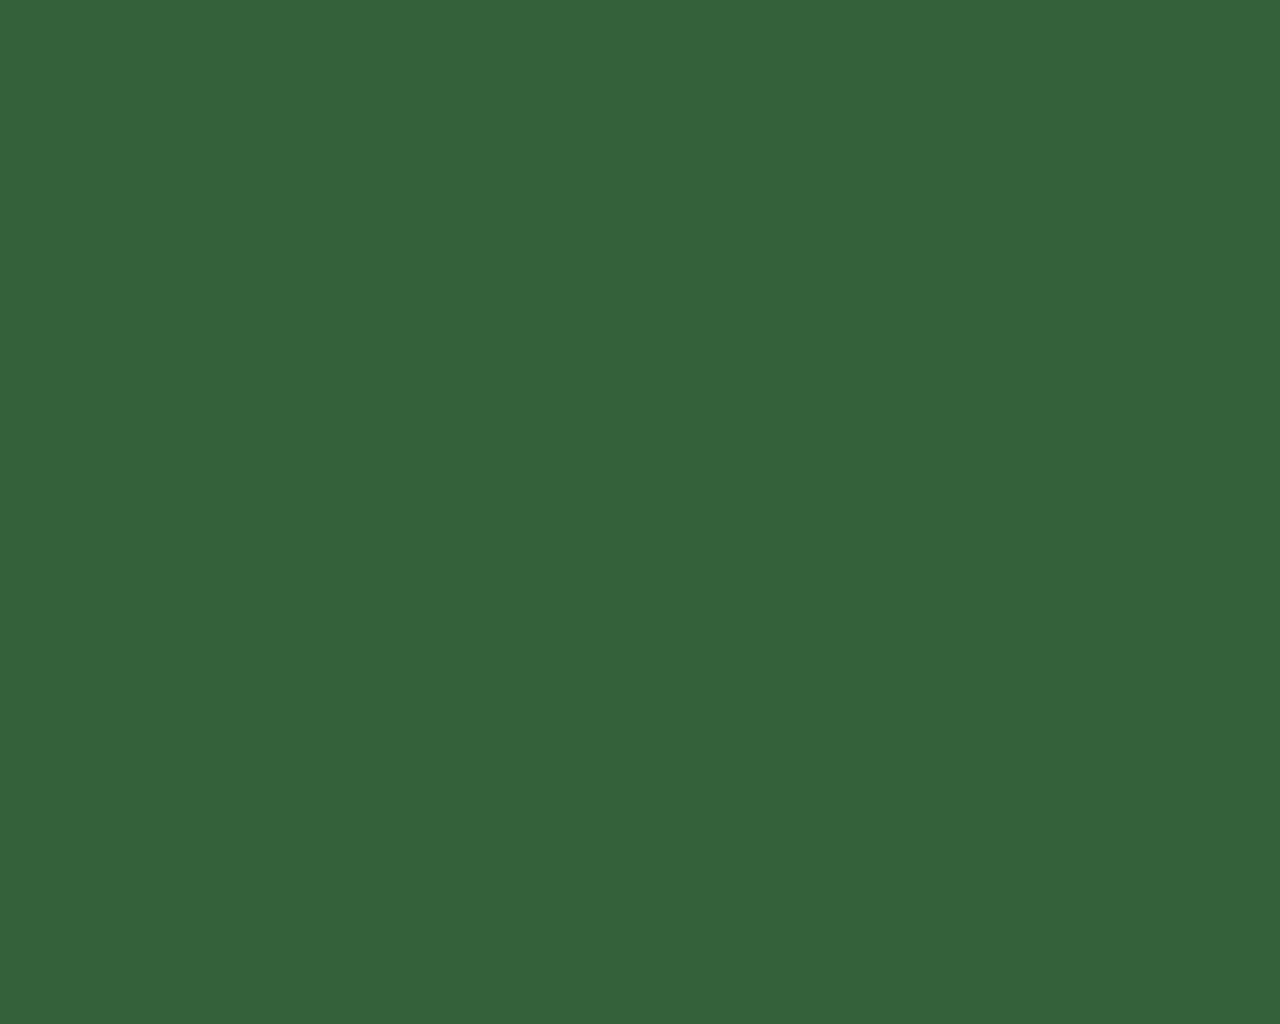 1280x1024 Hunter Green Solid Color Background